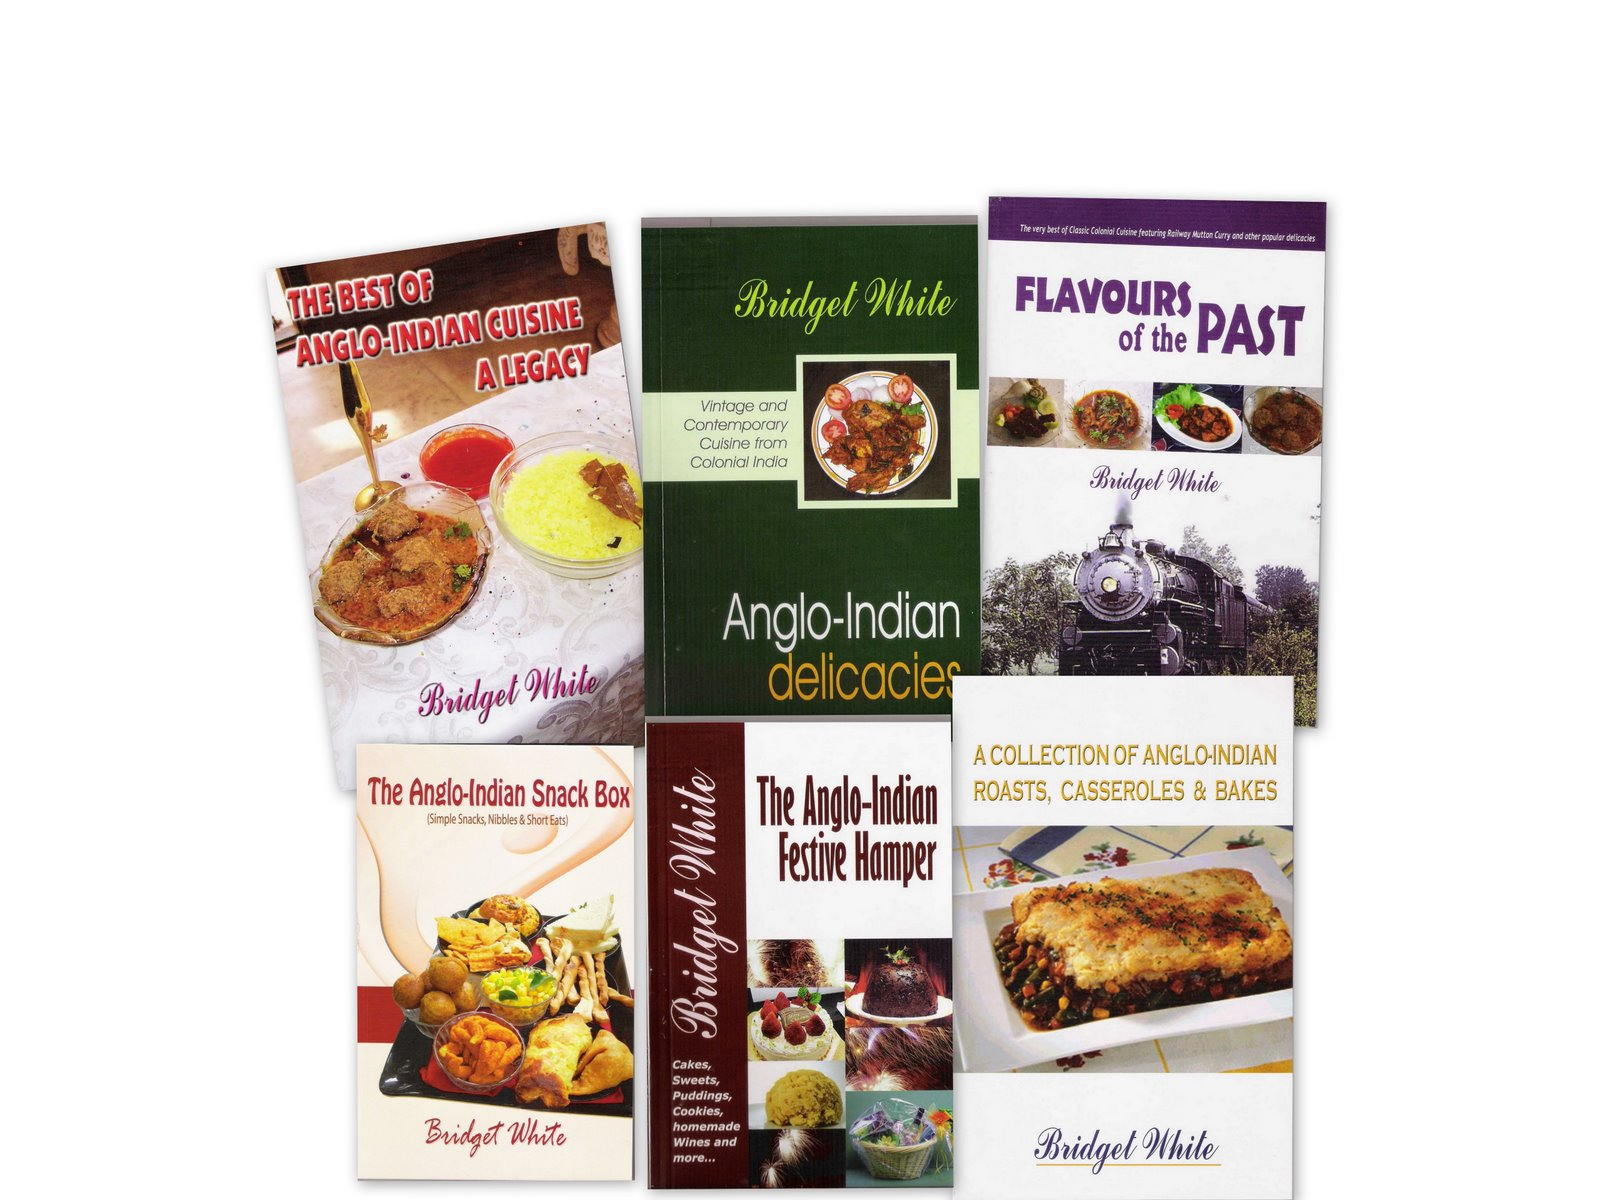 Anglo indian food by bridget white kumar 07 31 11 for Anglo indian cuisine